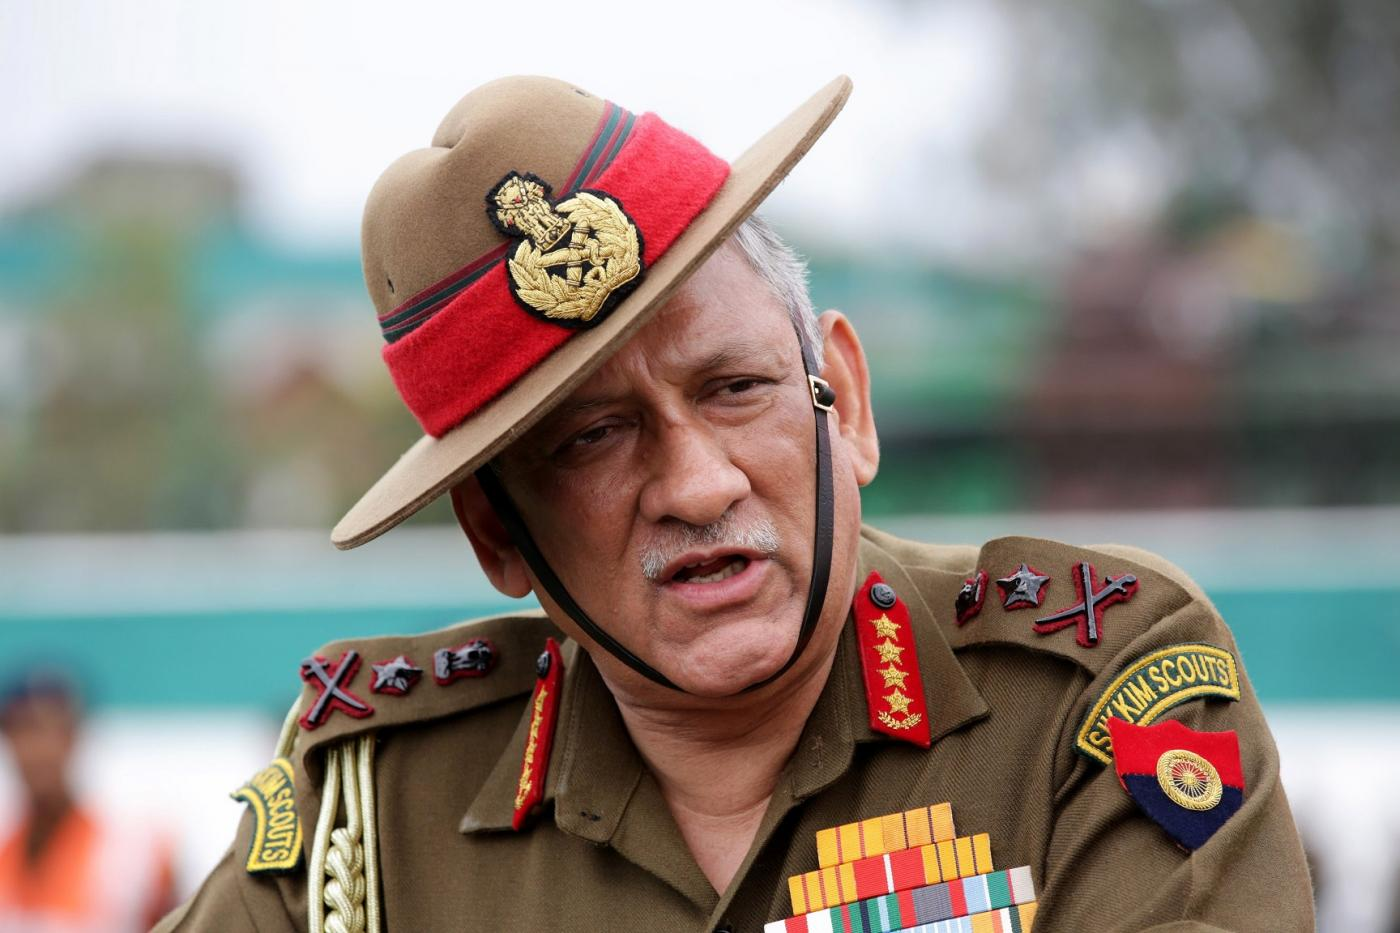 Pathankot: Indian Army chief General Bipin Rawat addresses during 'Year of Disabled Soldiers in Line of Duty' programme at Mamun military station in Punjab's Pathankot on Nov 12, 2018. (Photo: IANS) by .